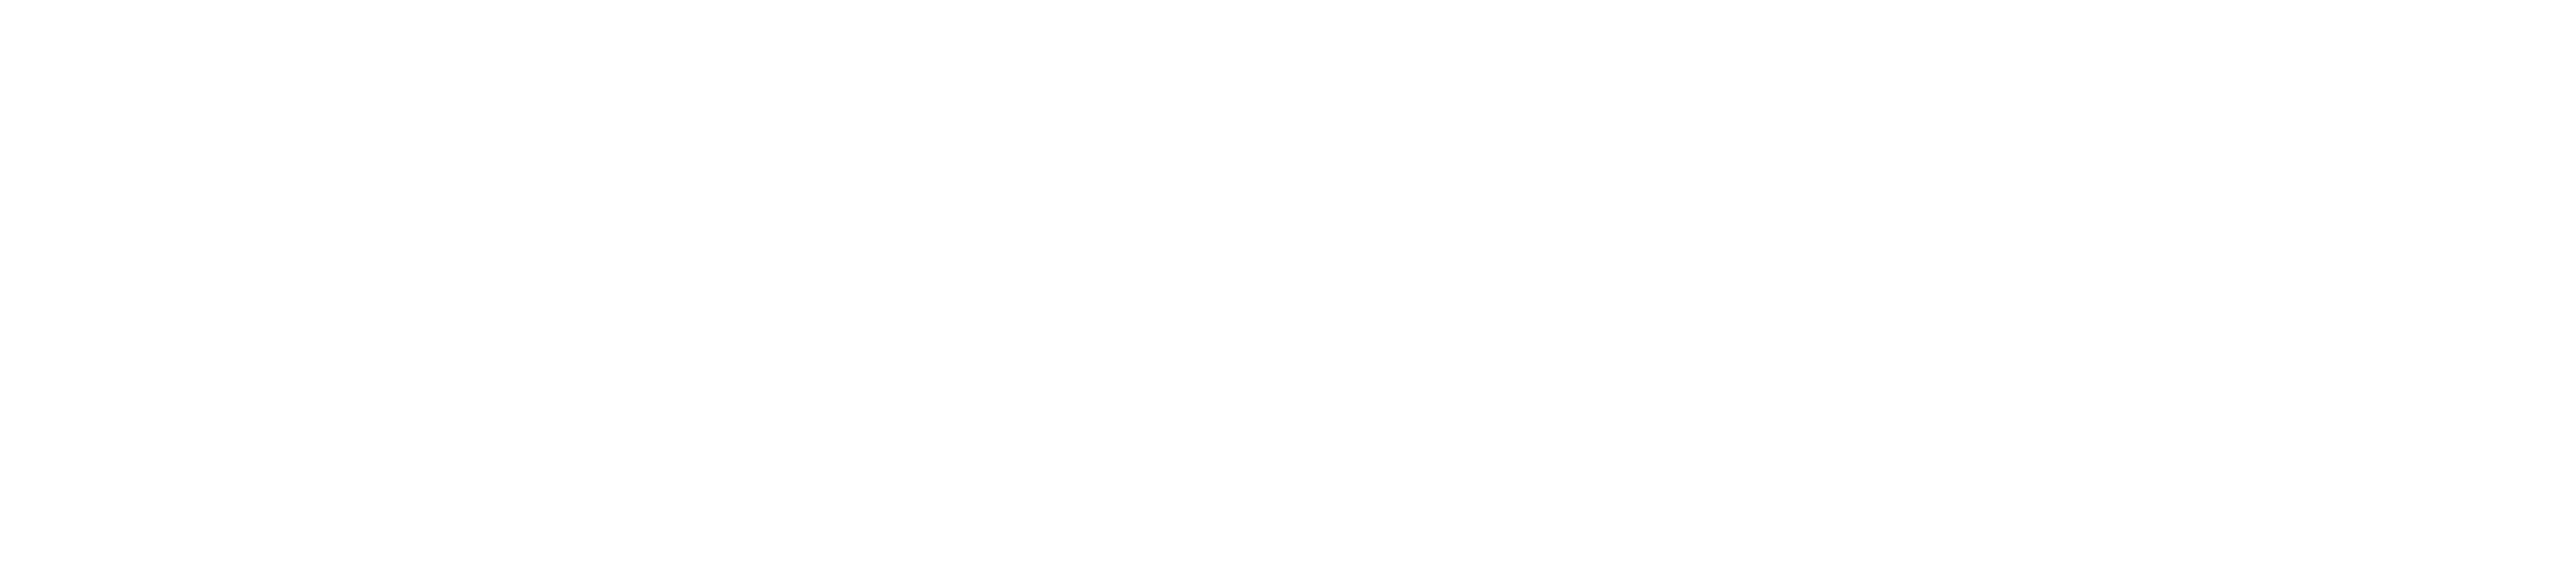 Fly on the Wall Productions